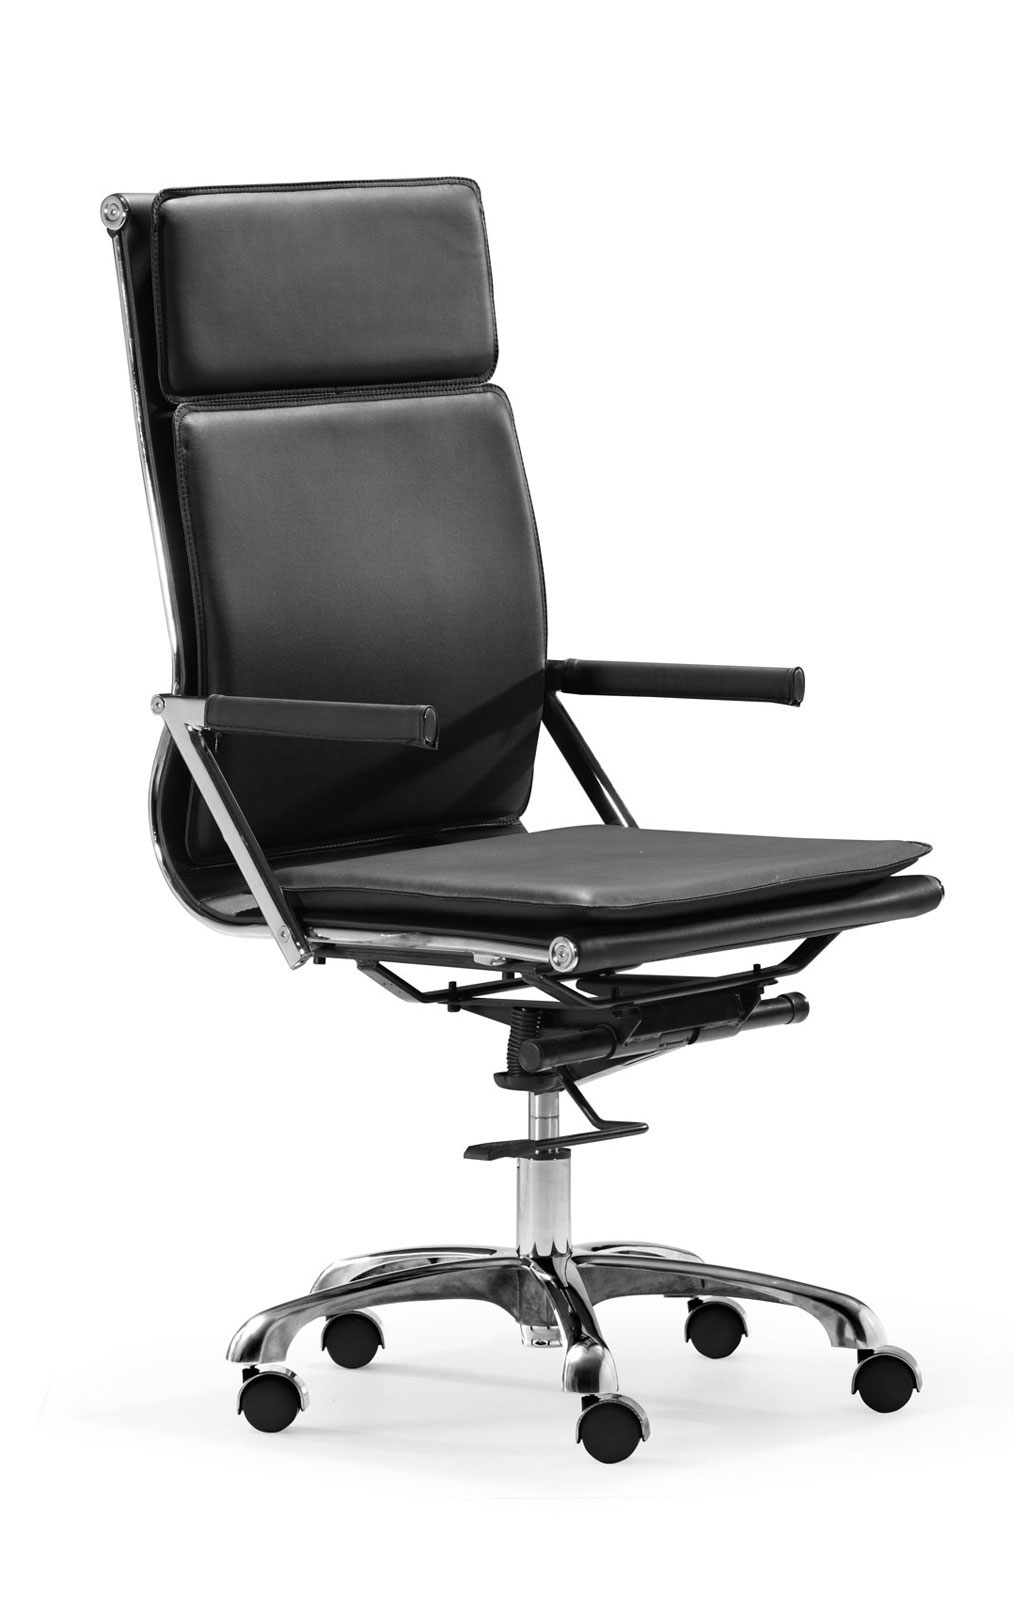 High Back Desk Chair in Office Chairs